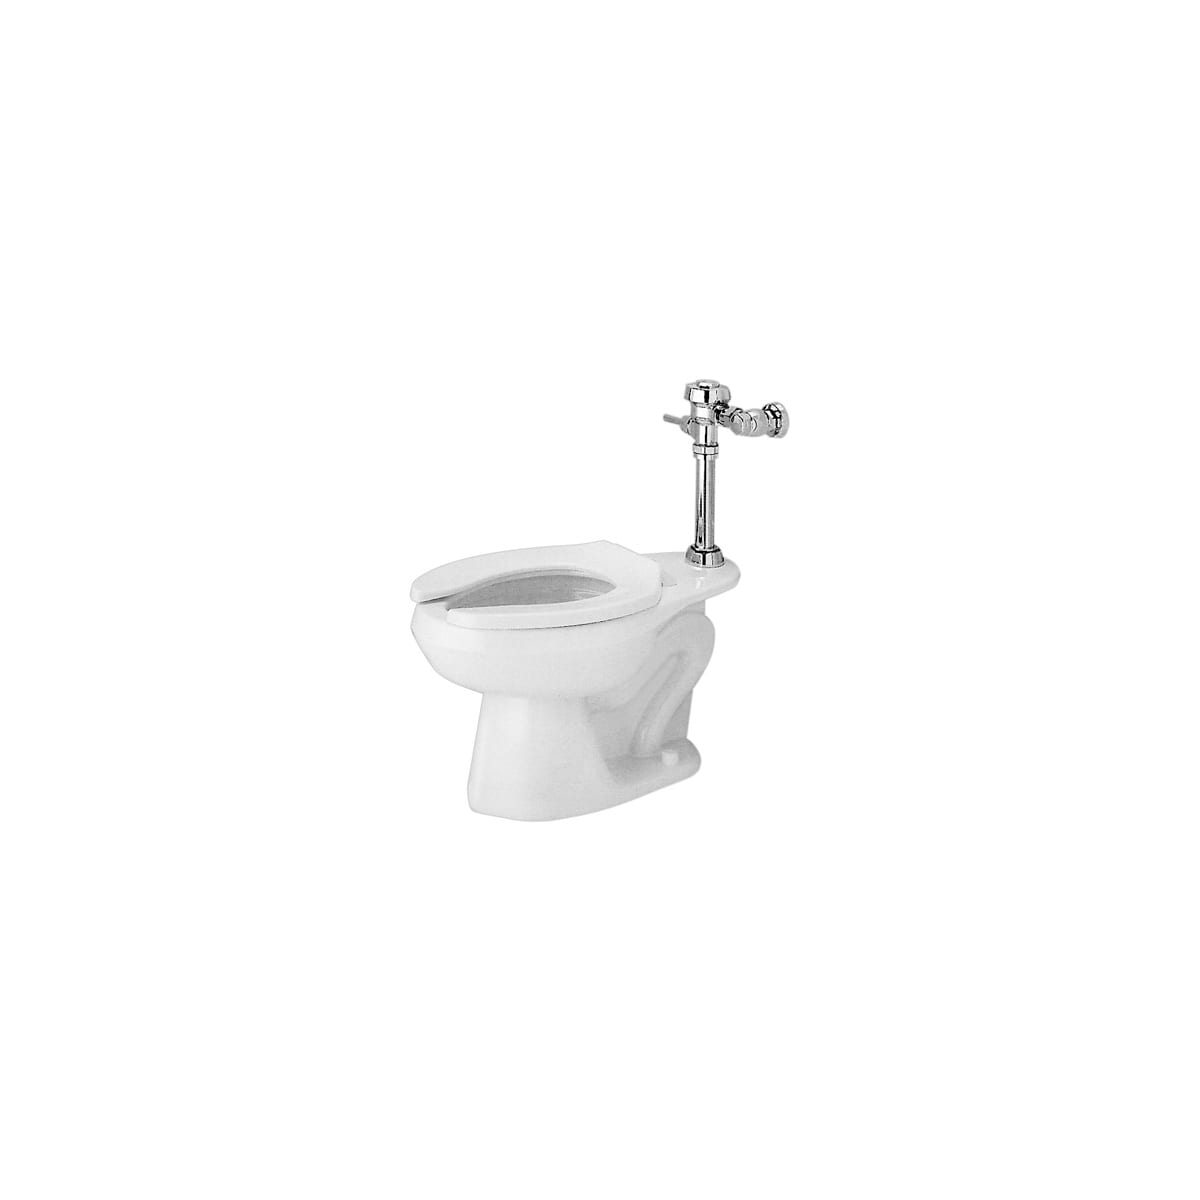 Proflo Pf1701wh White Elongated Toilet Bowl Only With 10 Rough In